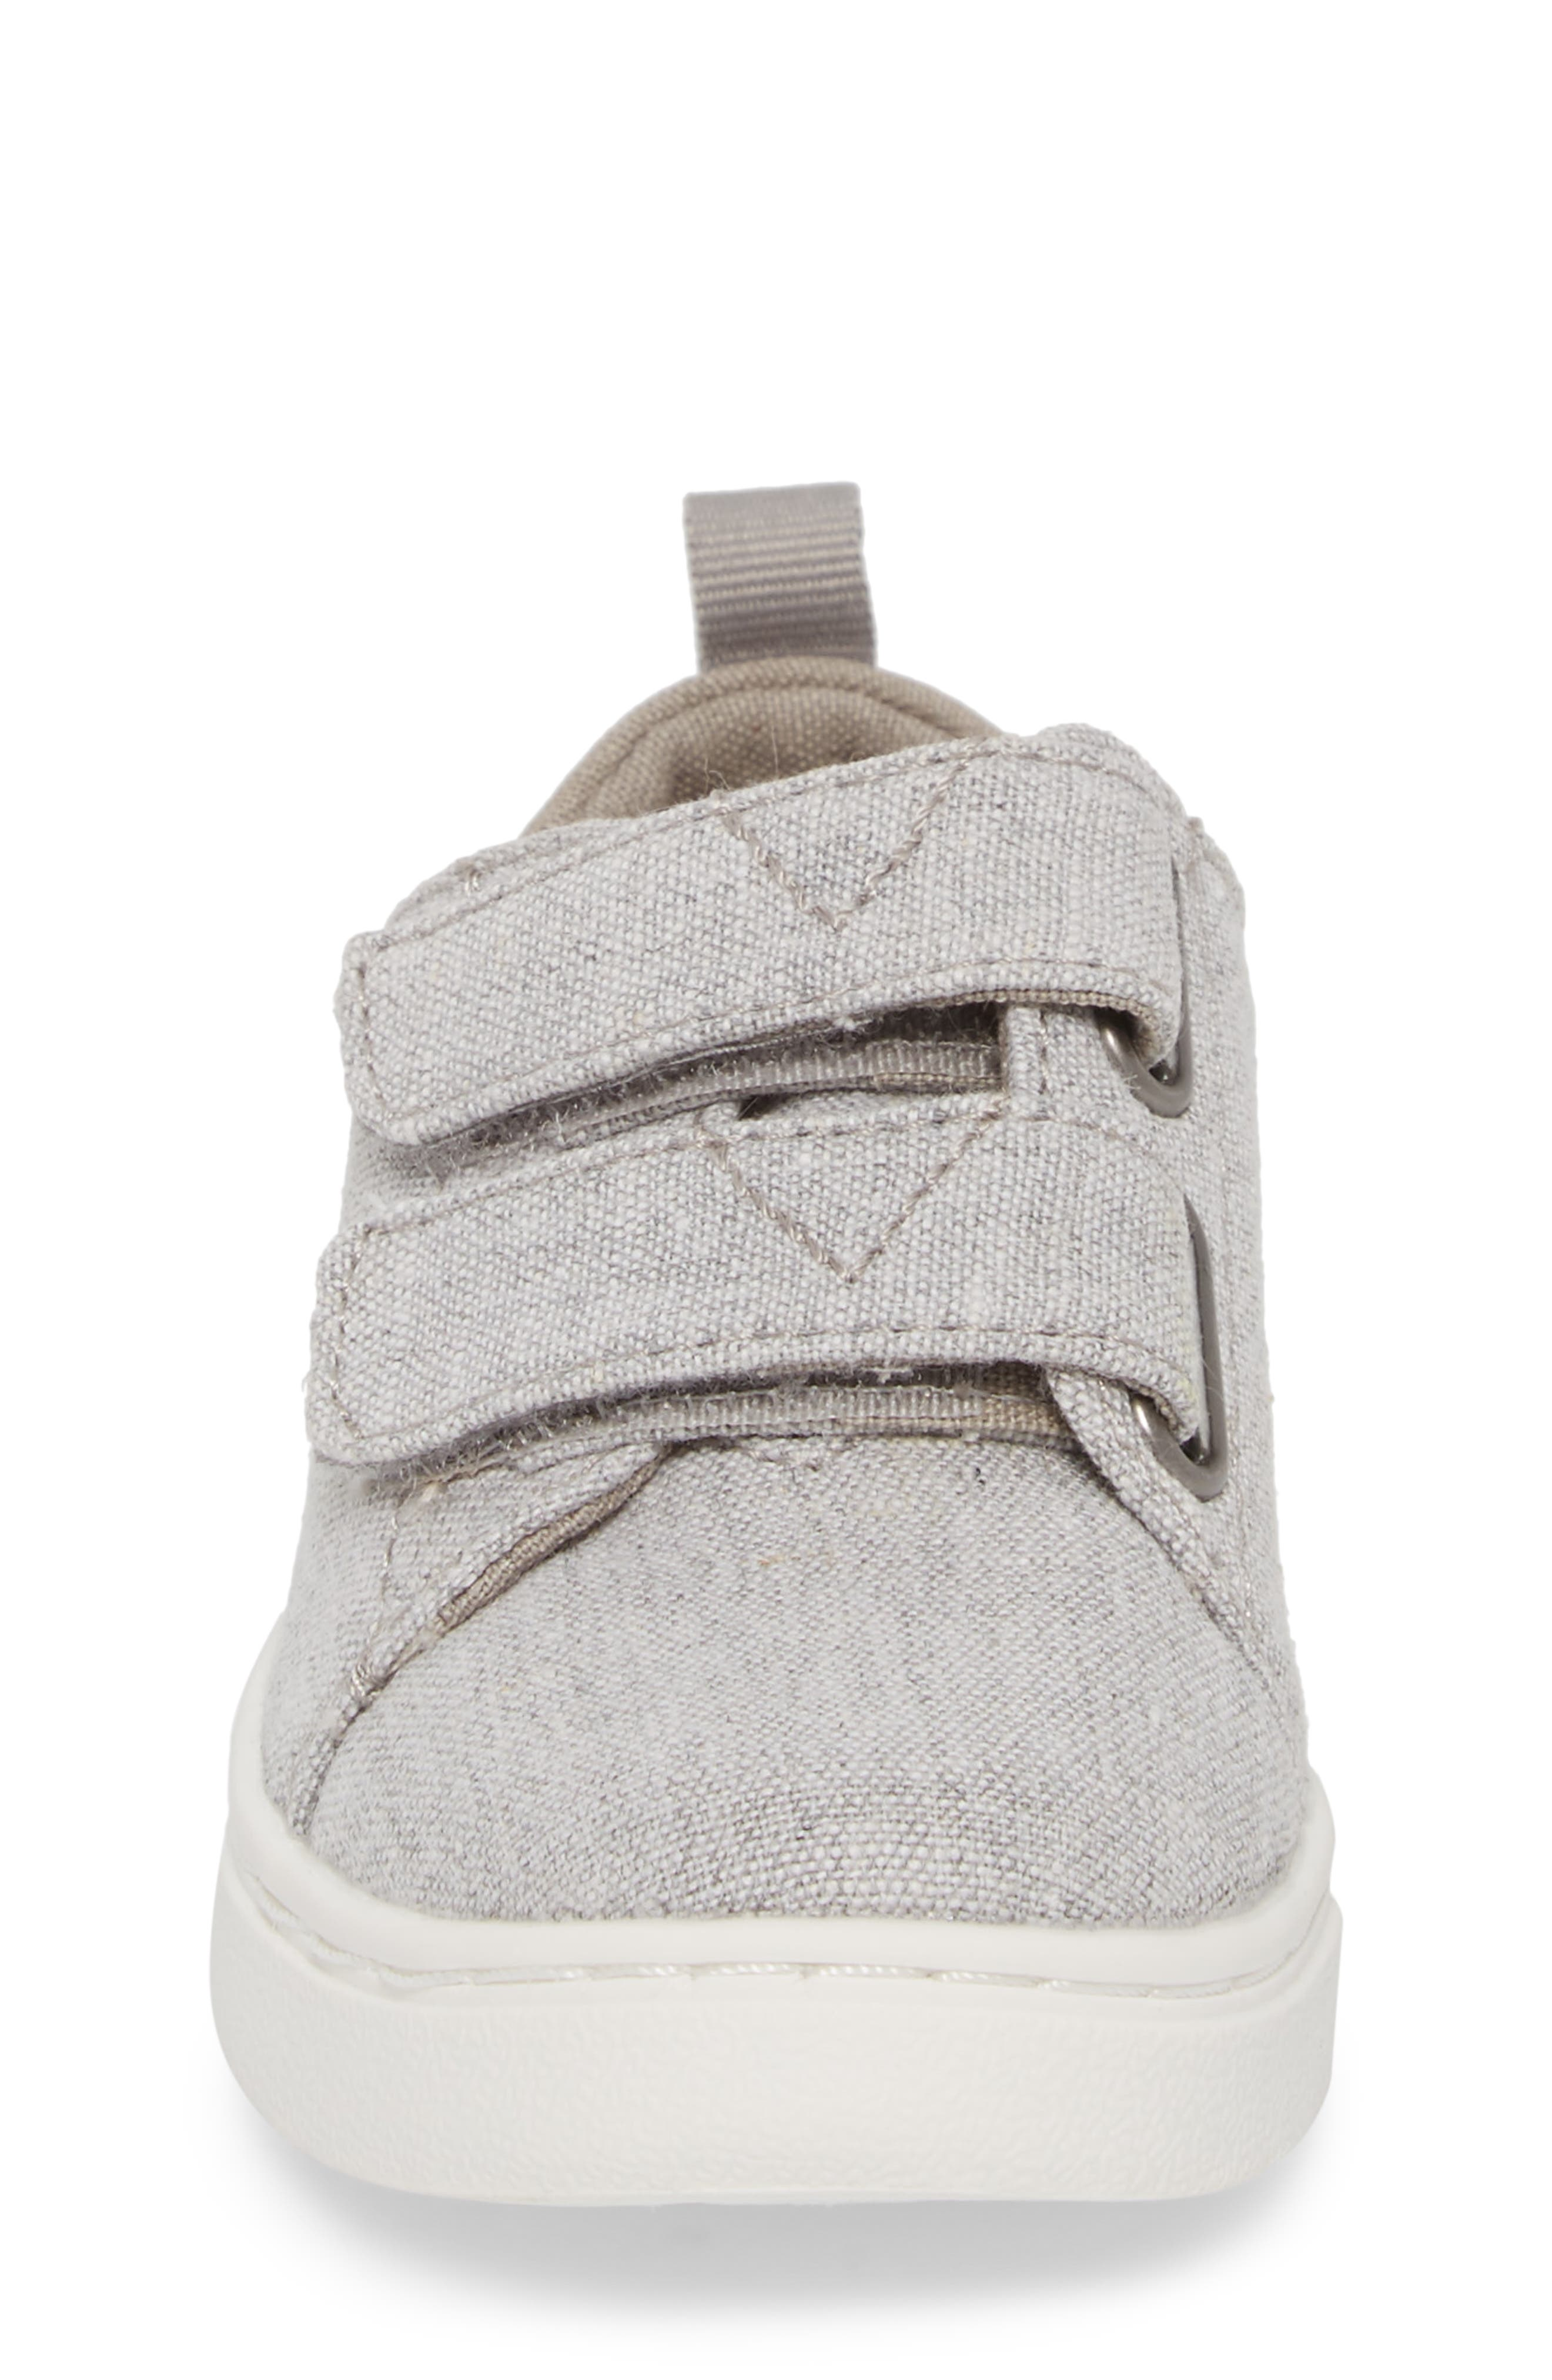 Lenny Sneaker,                             Alternate thumbnail 4, color,                             DRIZZLE GREY CHAMBRAY